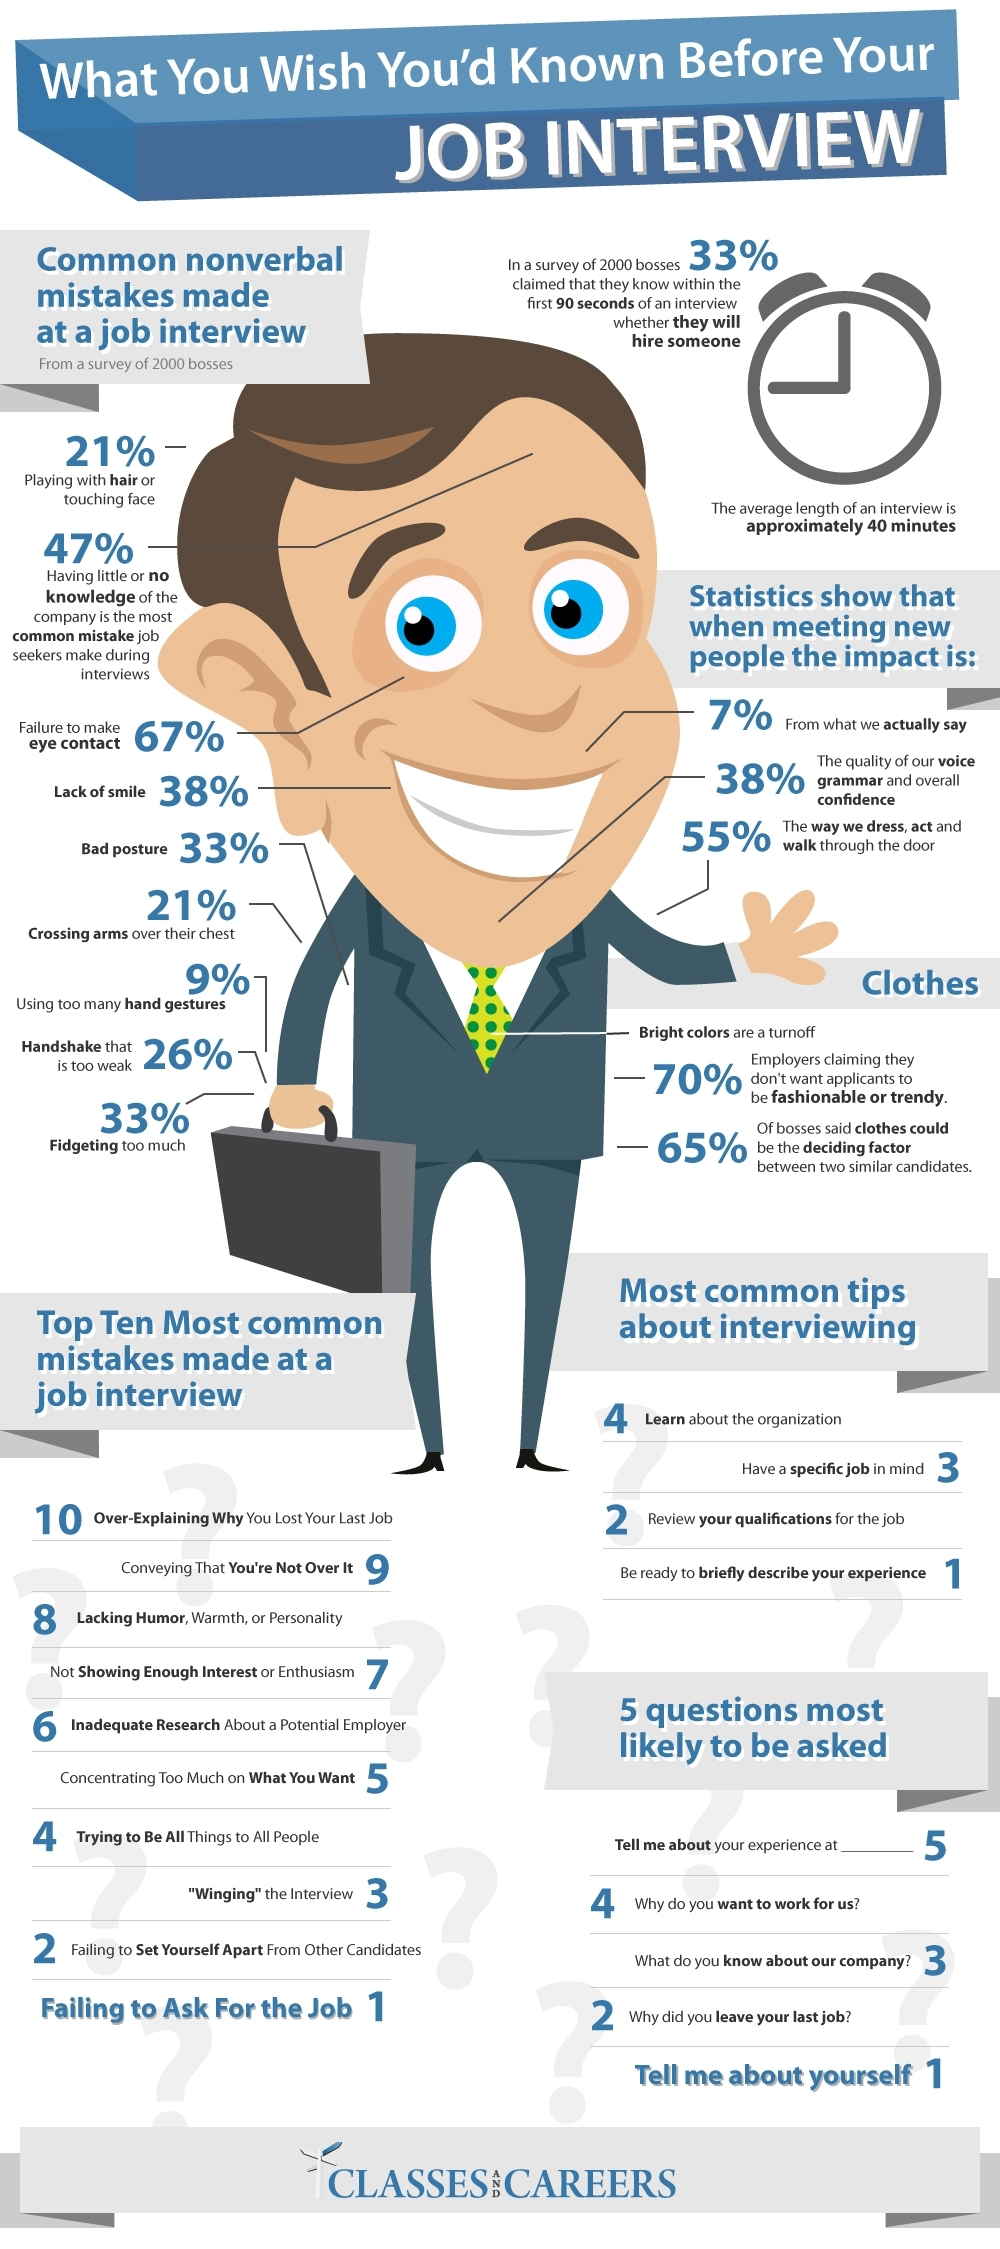 What you wish you had known before your job interview